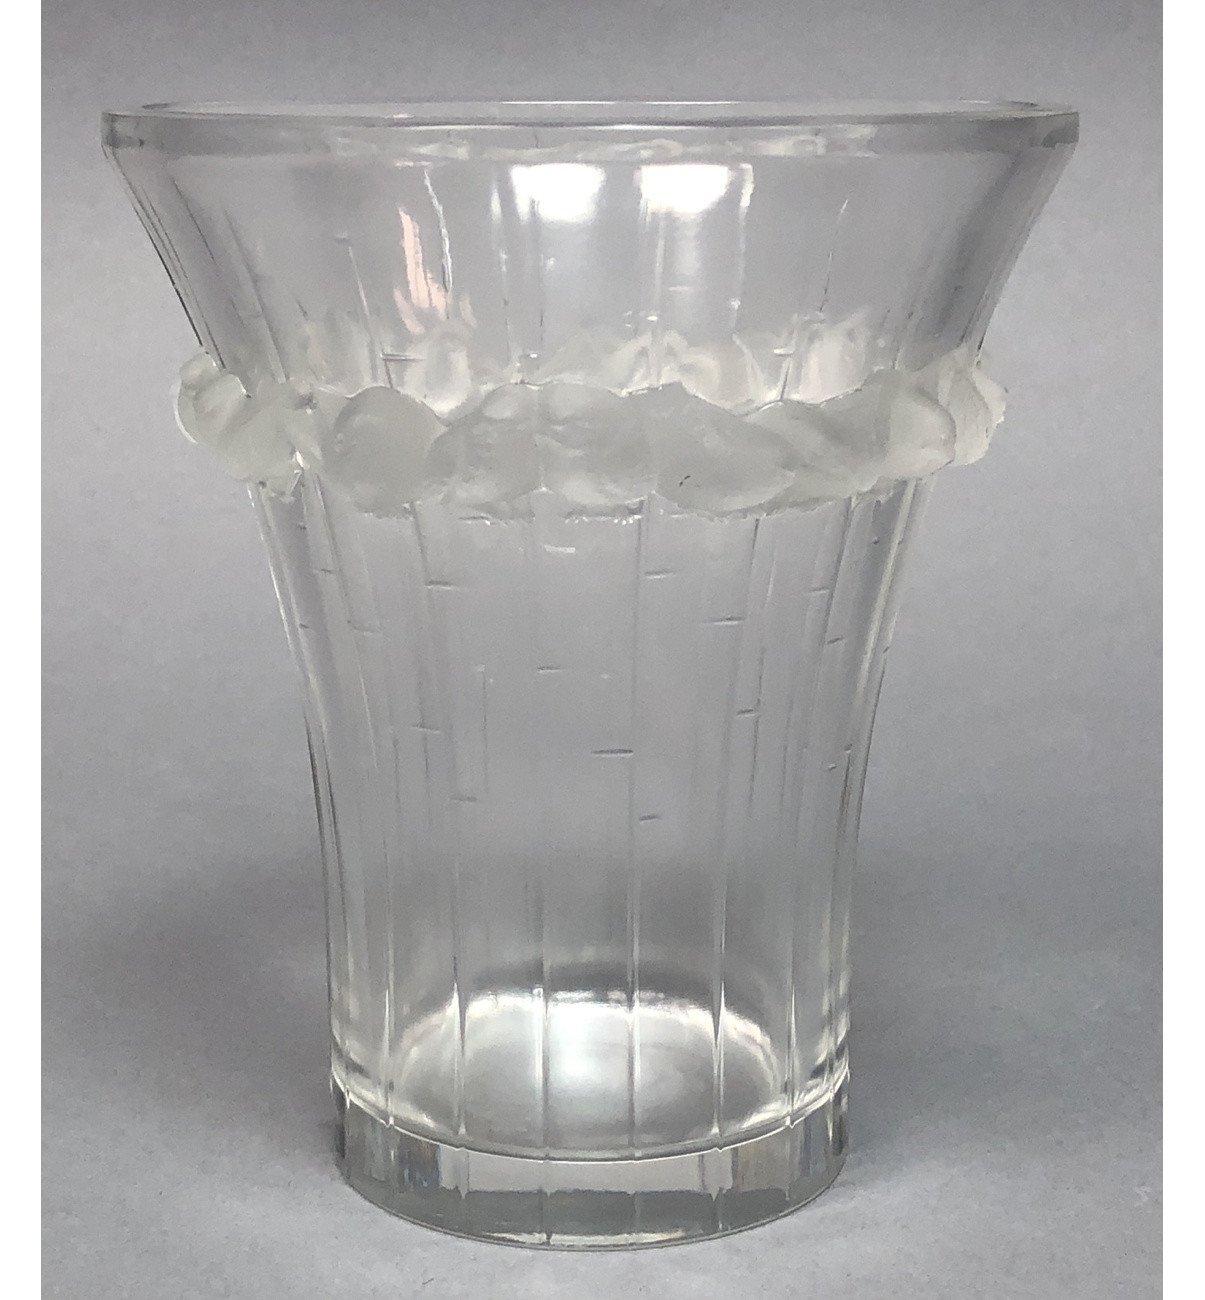 vintage etched glass vase of ml 210 vintage lalique france crystal vase raised frosted crystal throughout next